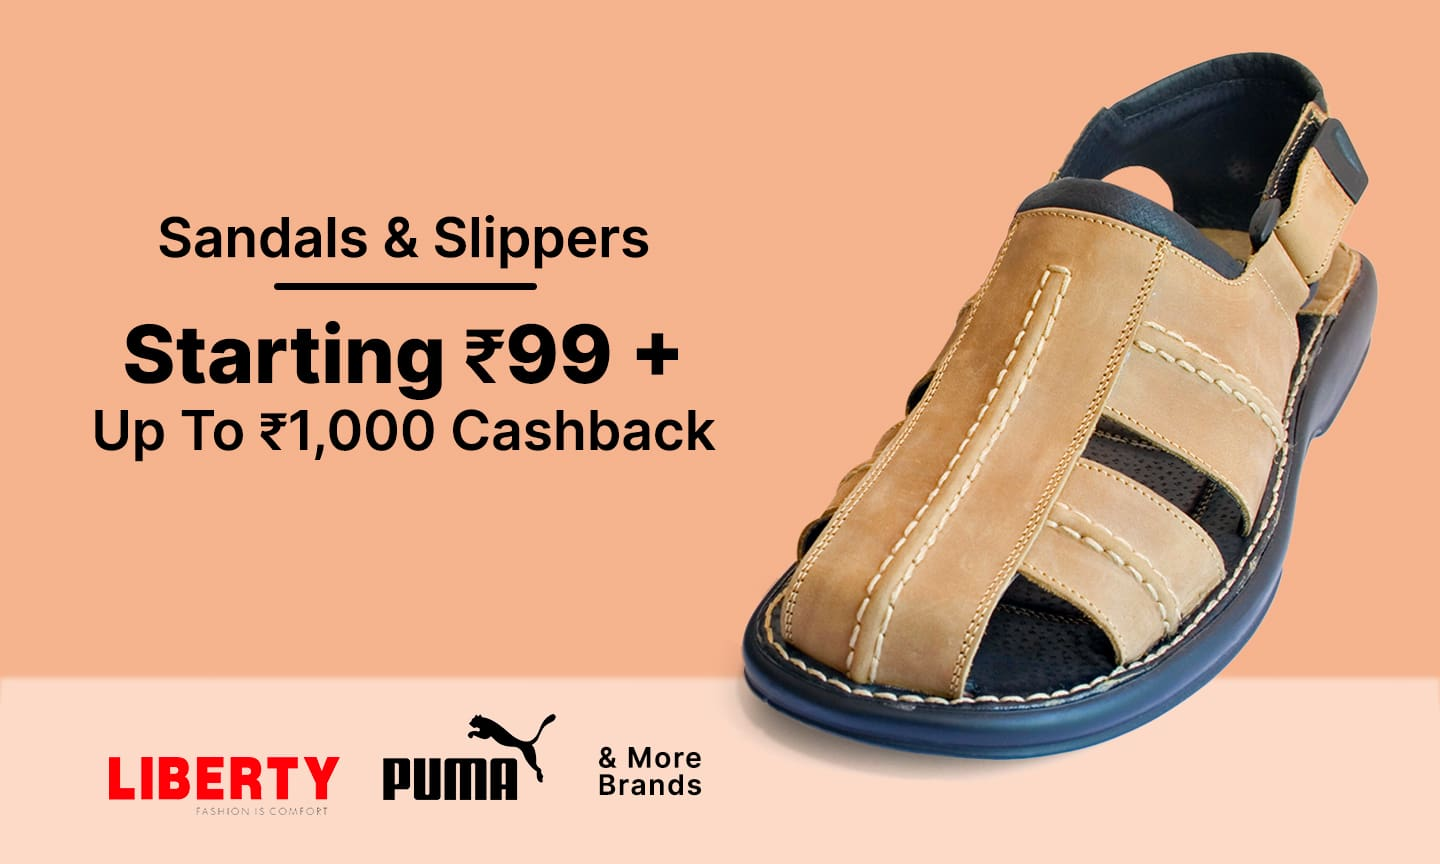 Sandals & Slippers | Starting at 99